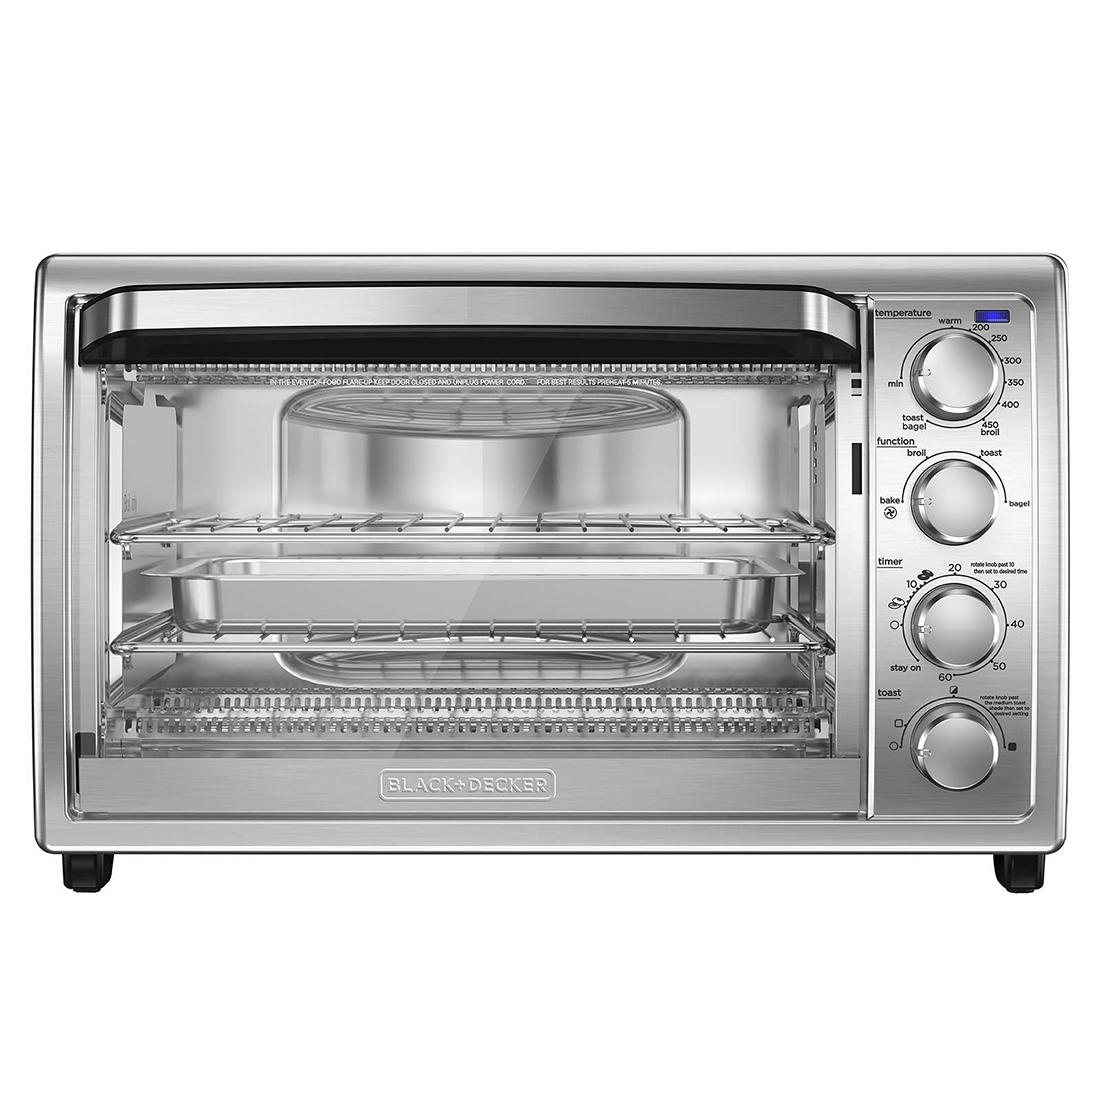 How to Choose the Best Convection Toaster Oven?